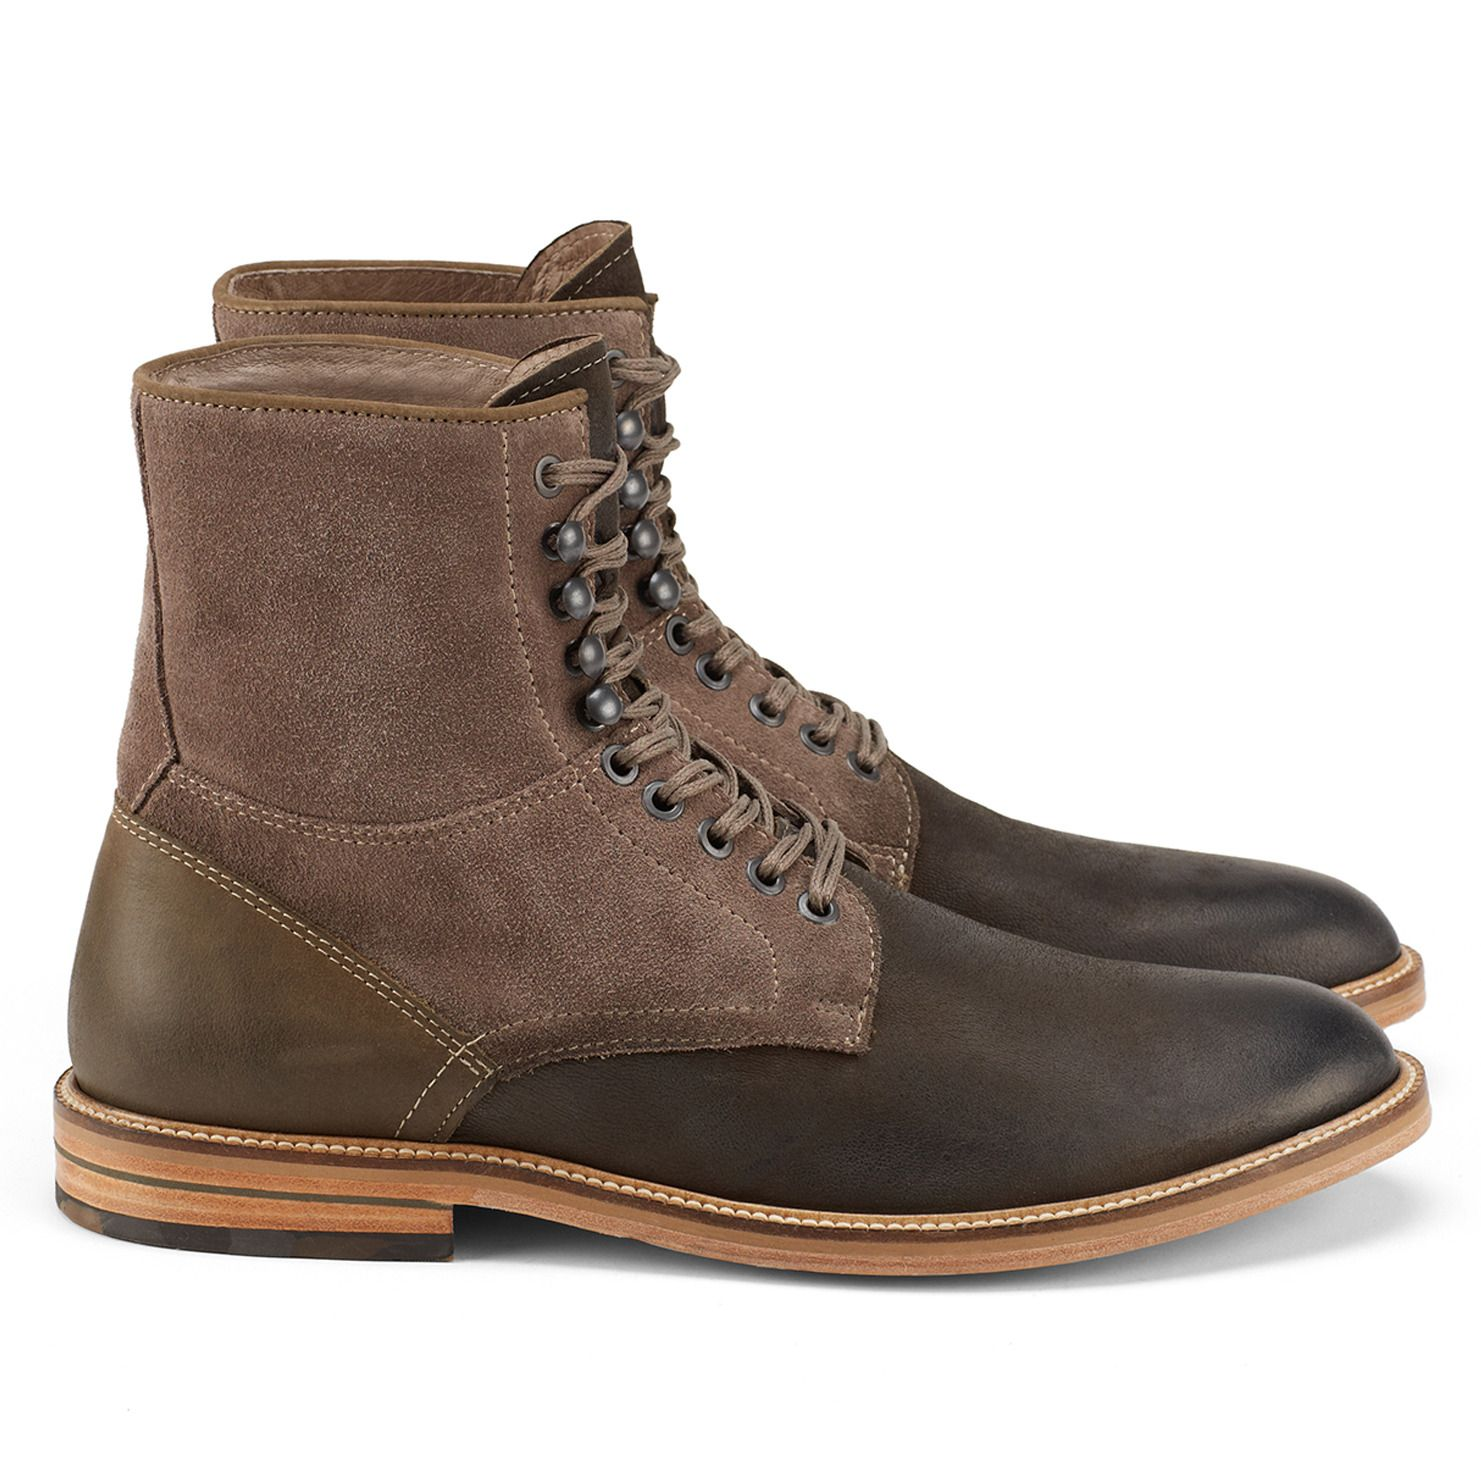 382165a6b1 TRUJILLO - men's shoes mr. b's collection for sale at ALDO Shoes ...